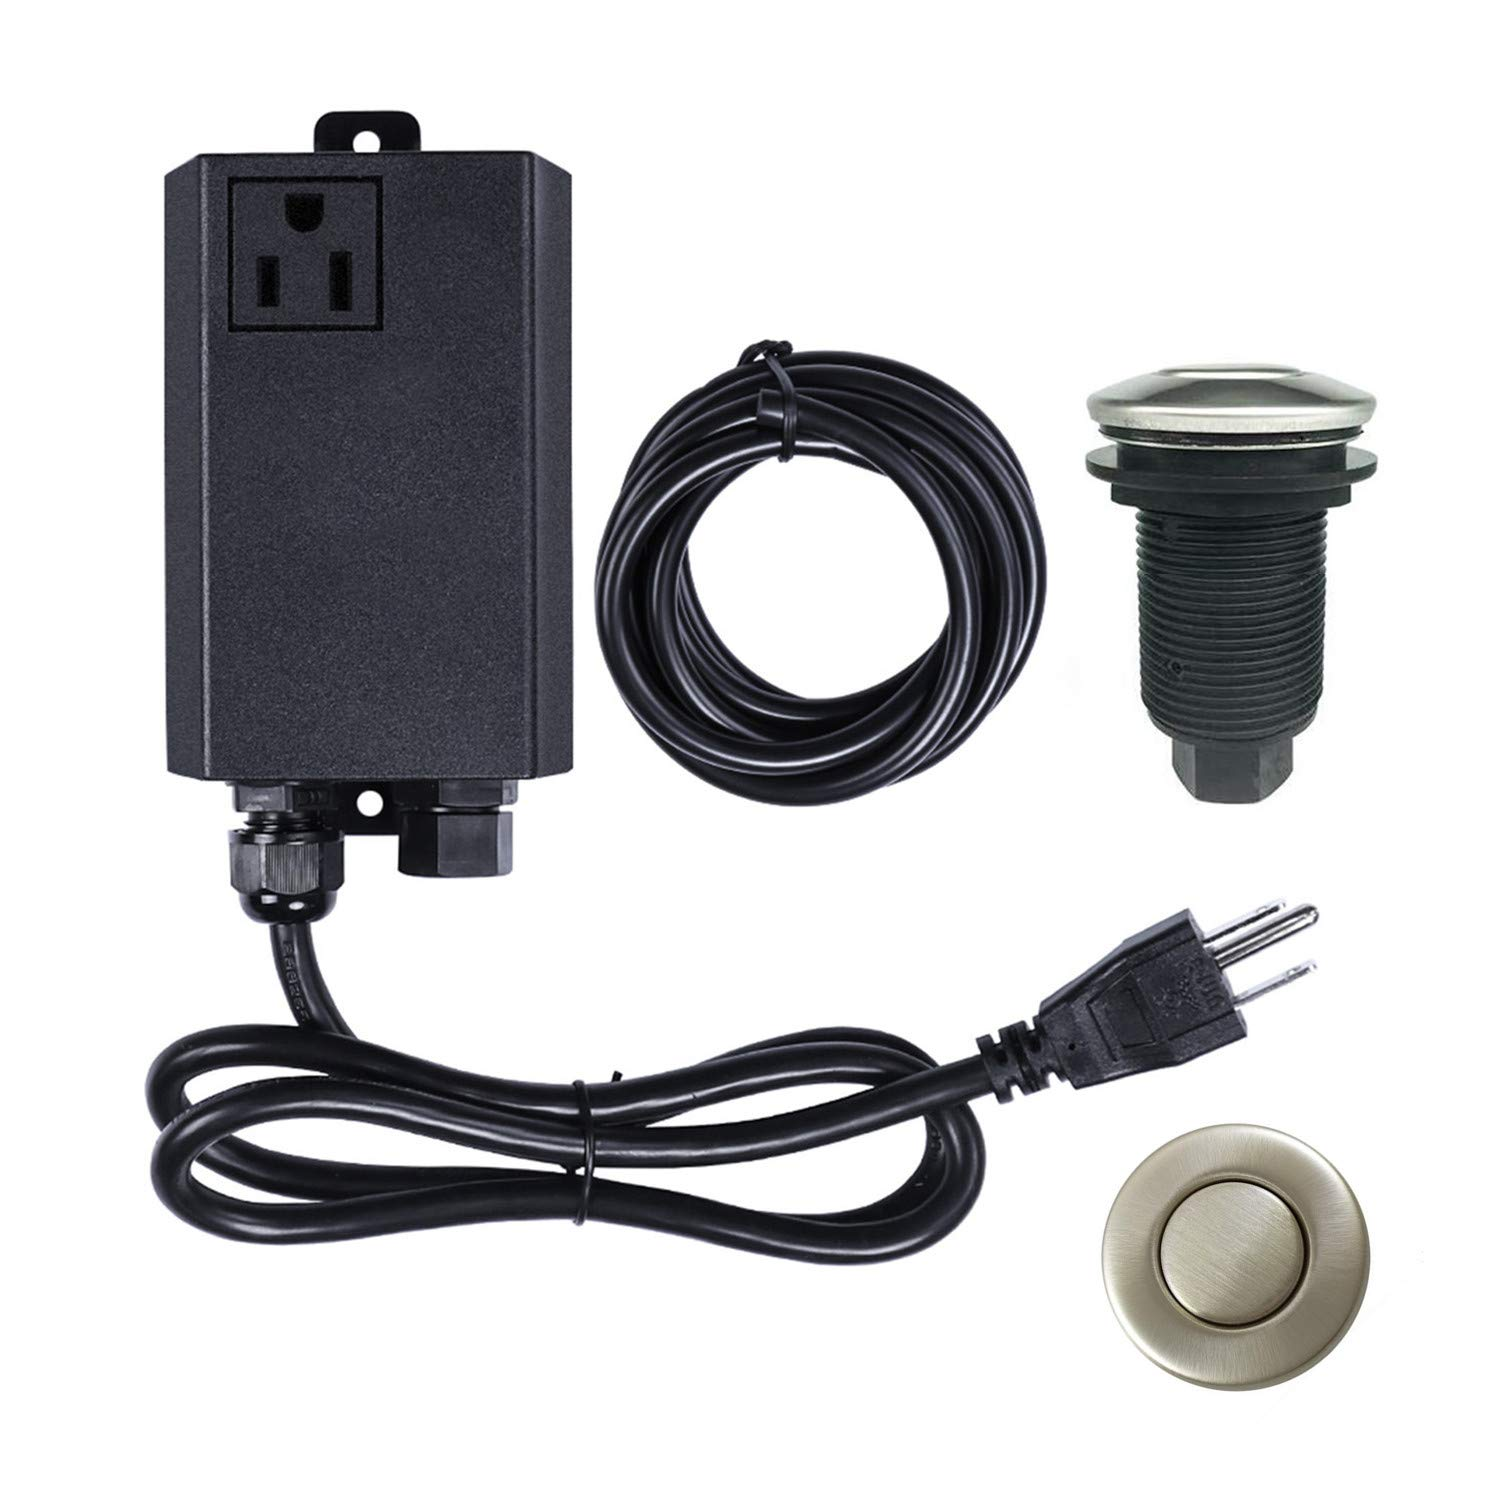 Garbage Disposal Air Switch Kit Sink Top Waste Disposal